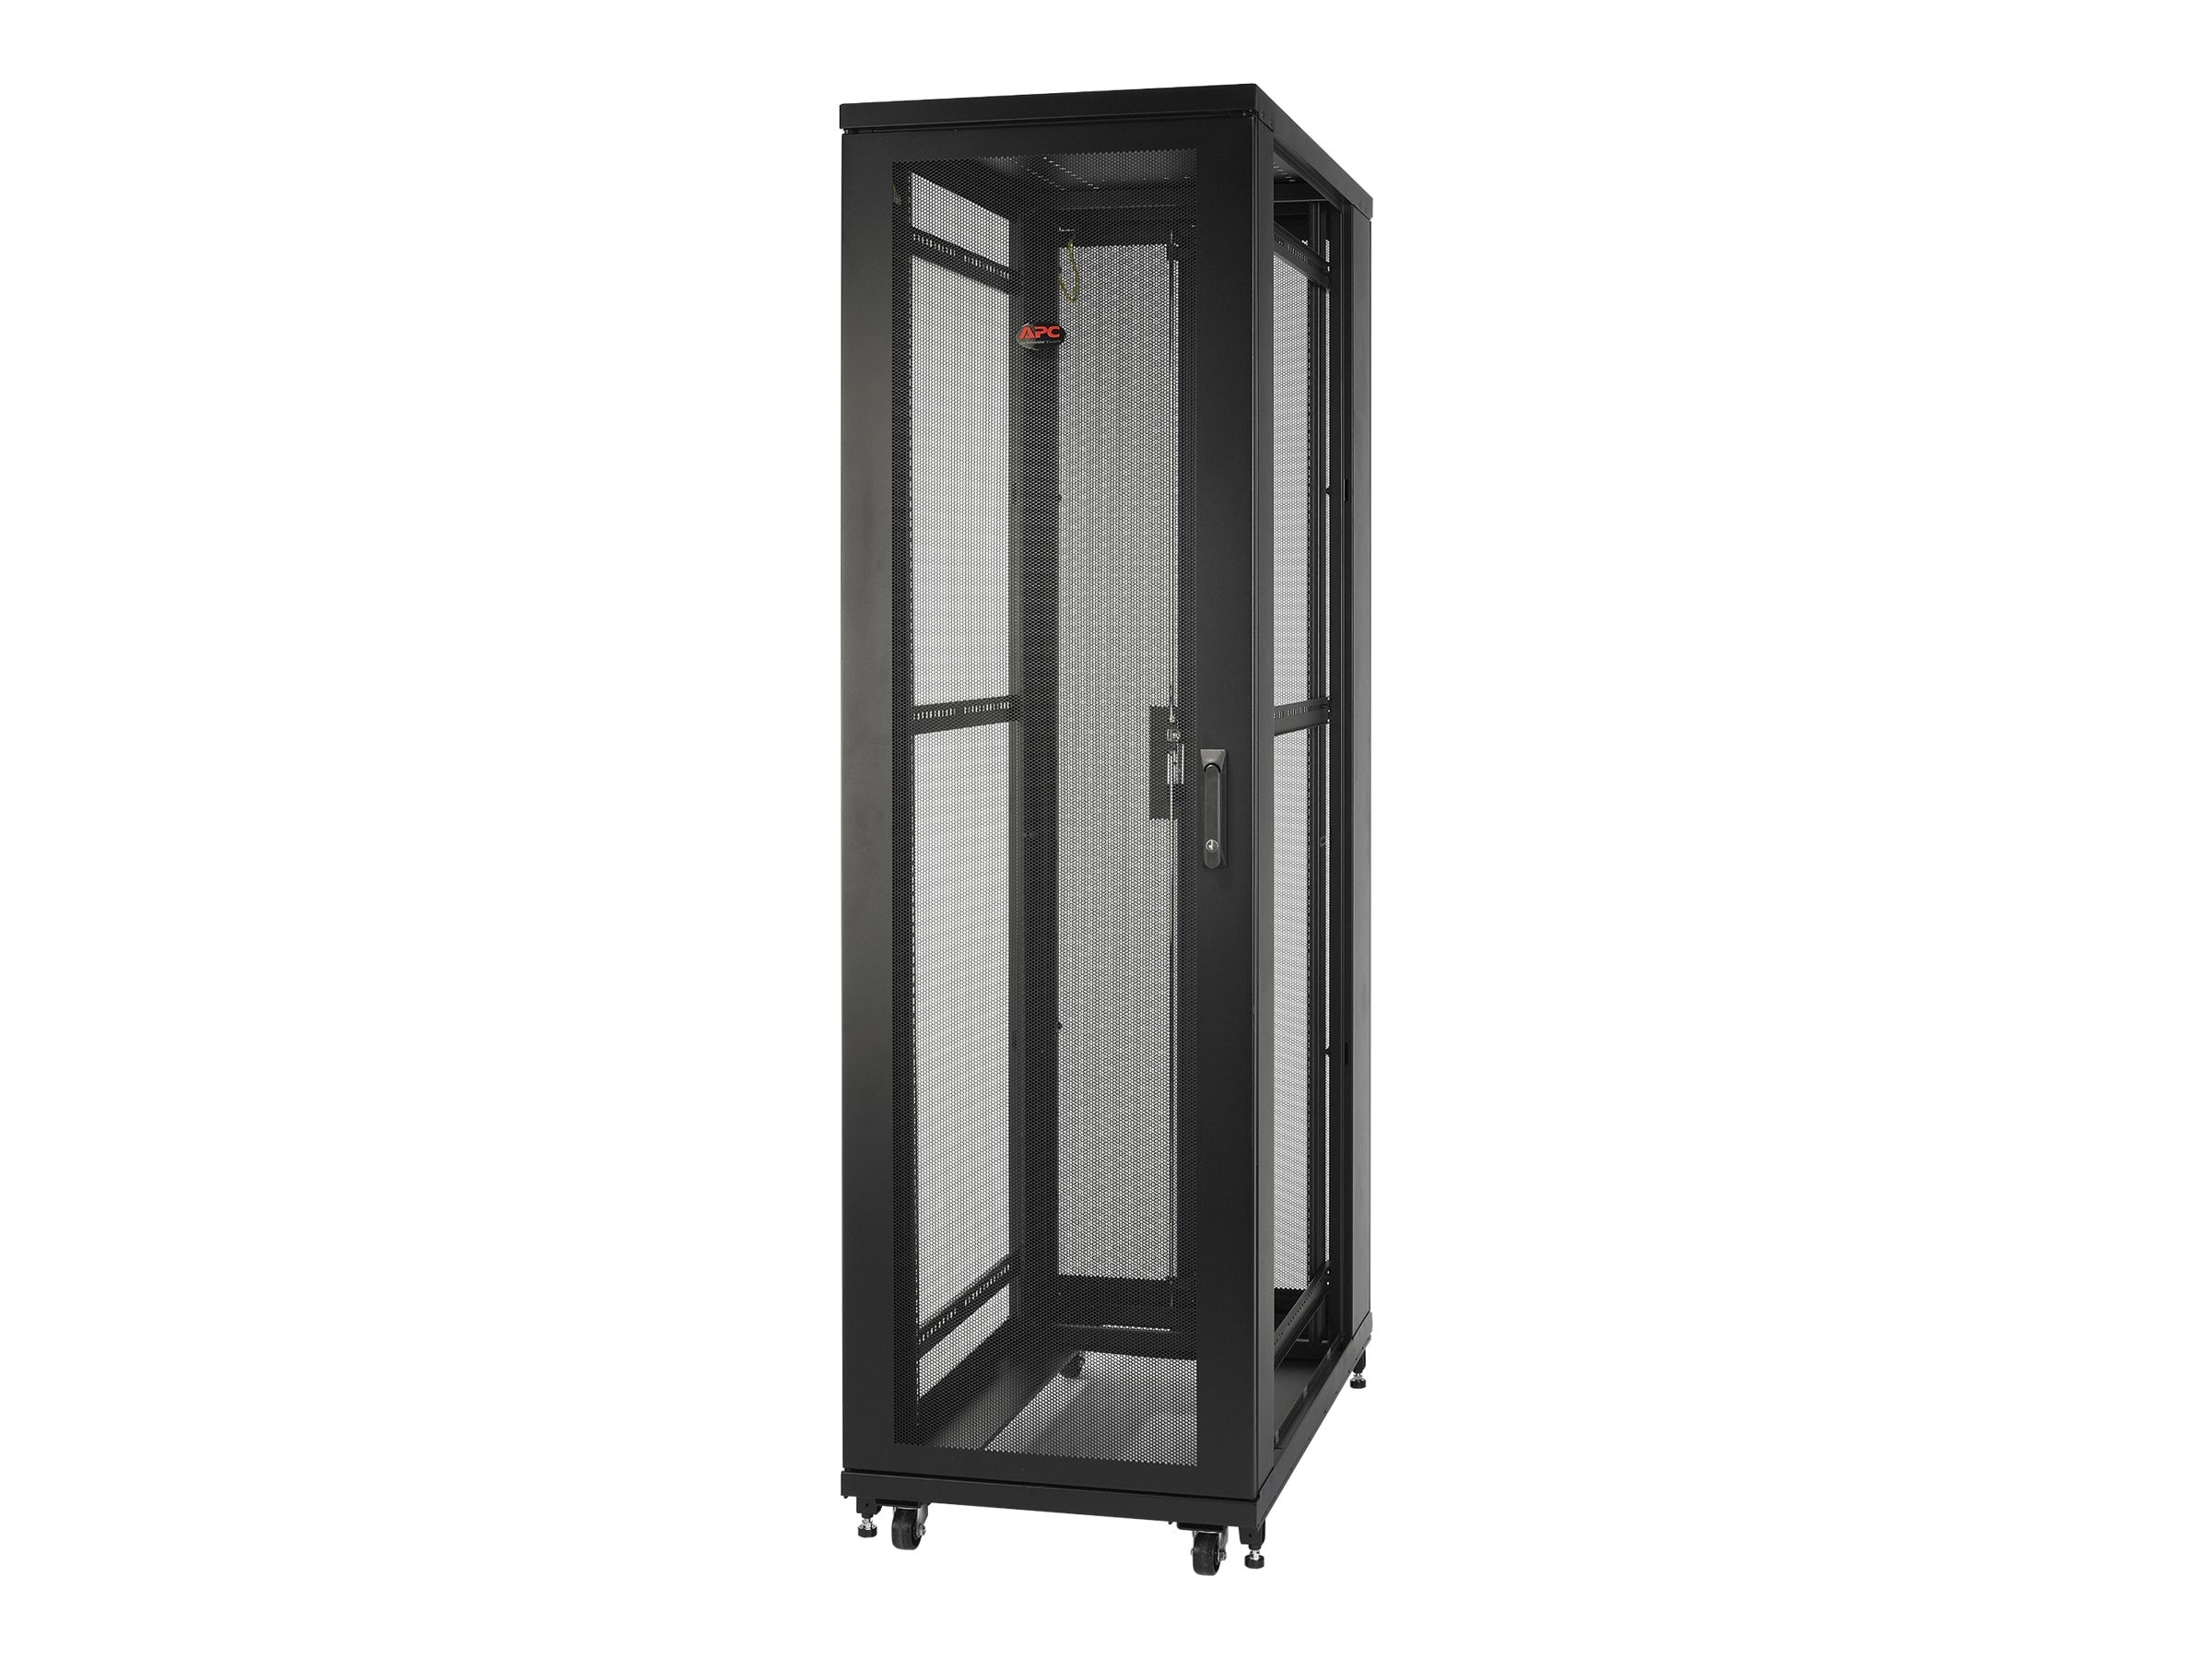 APC NetShelter SV 42U x 600mm Wide x 1060mm Deep Enclosure without Sides, Black, AR2401